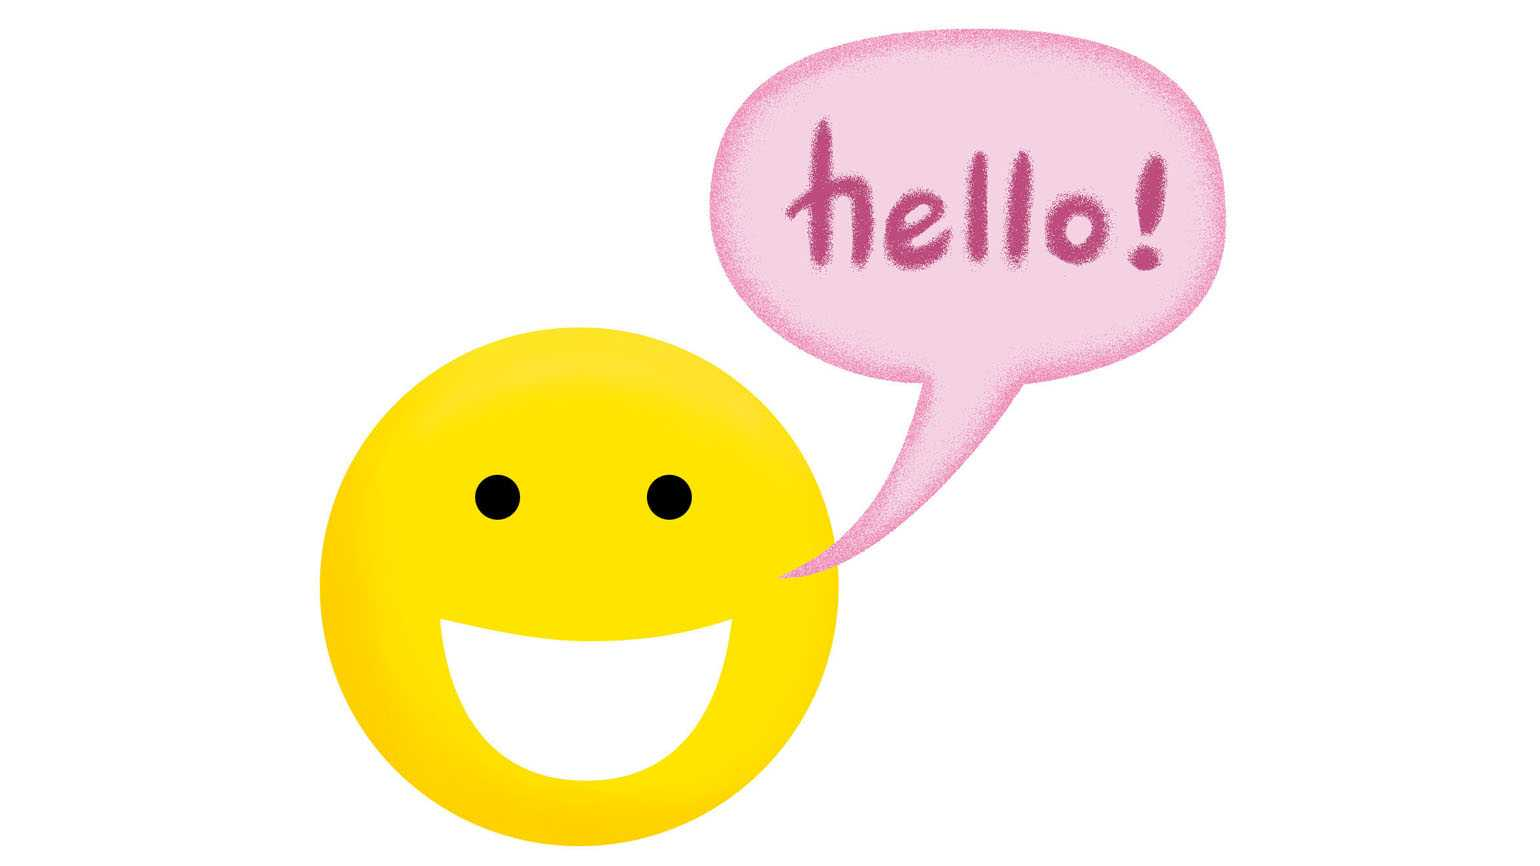 An artist's rendering of a smiley face saying 'Hello!' in a speech bubble.